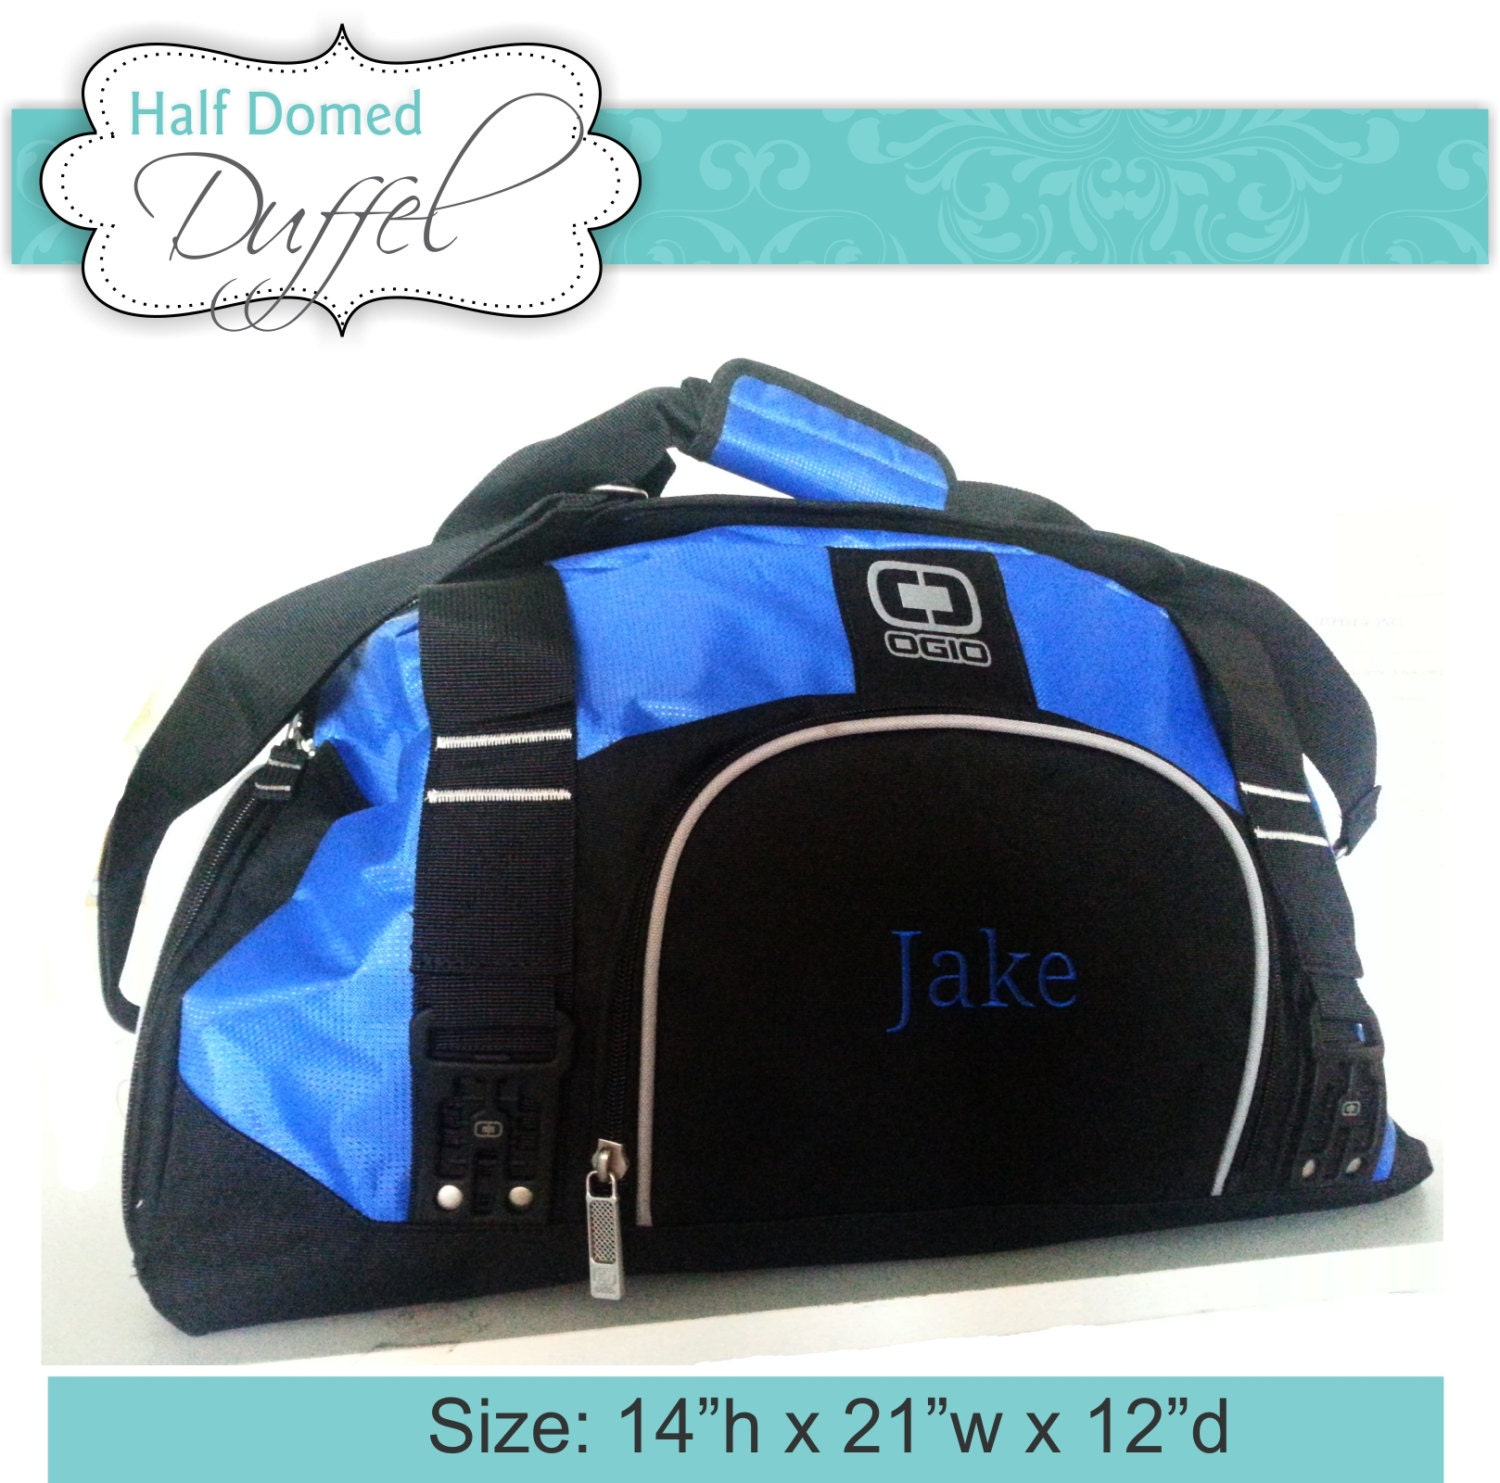 Quantity 6 Personalized Gym Bag for Men and Women Monogrammed  6d4f7bf5f3e11